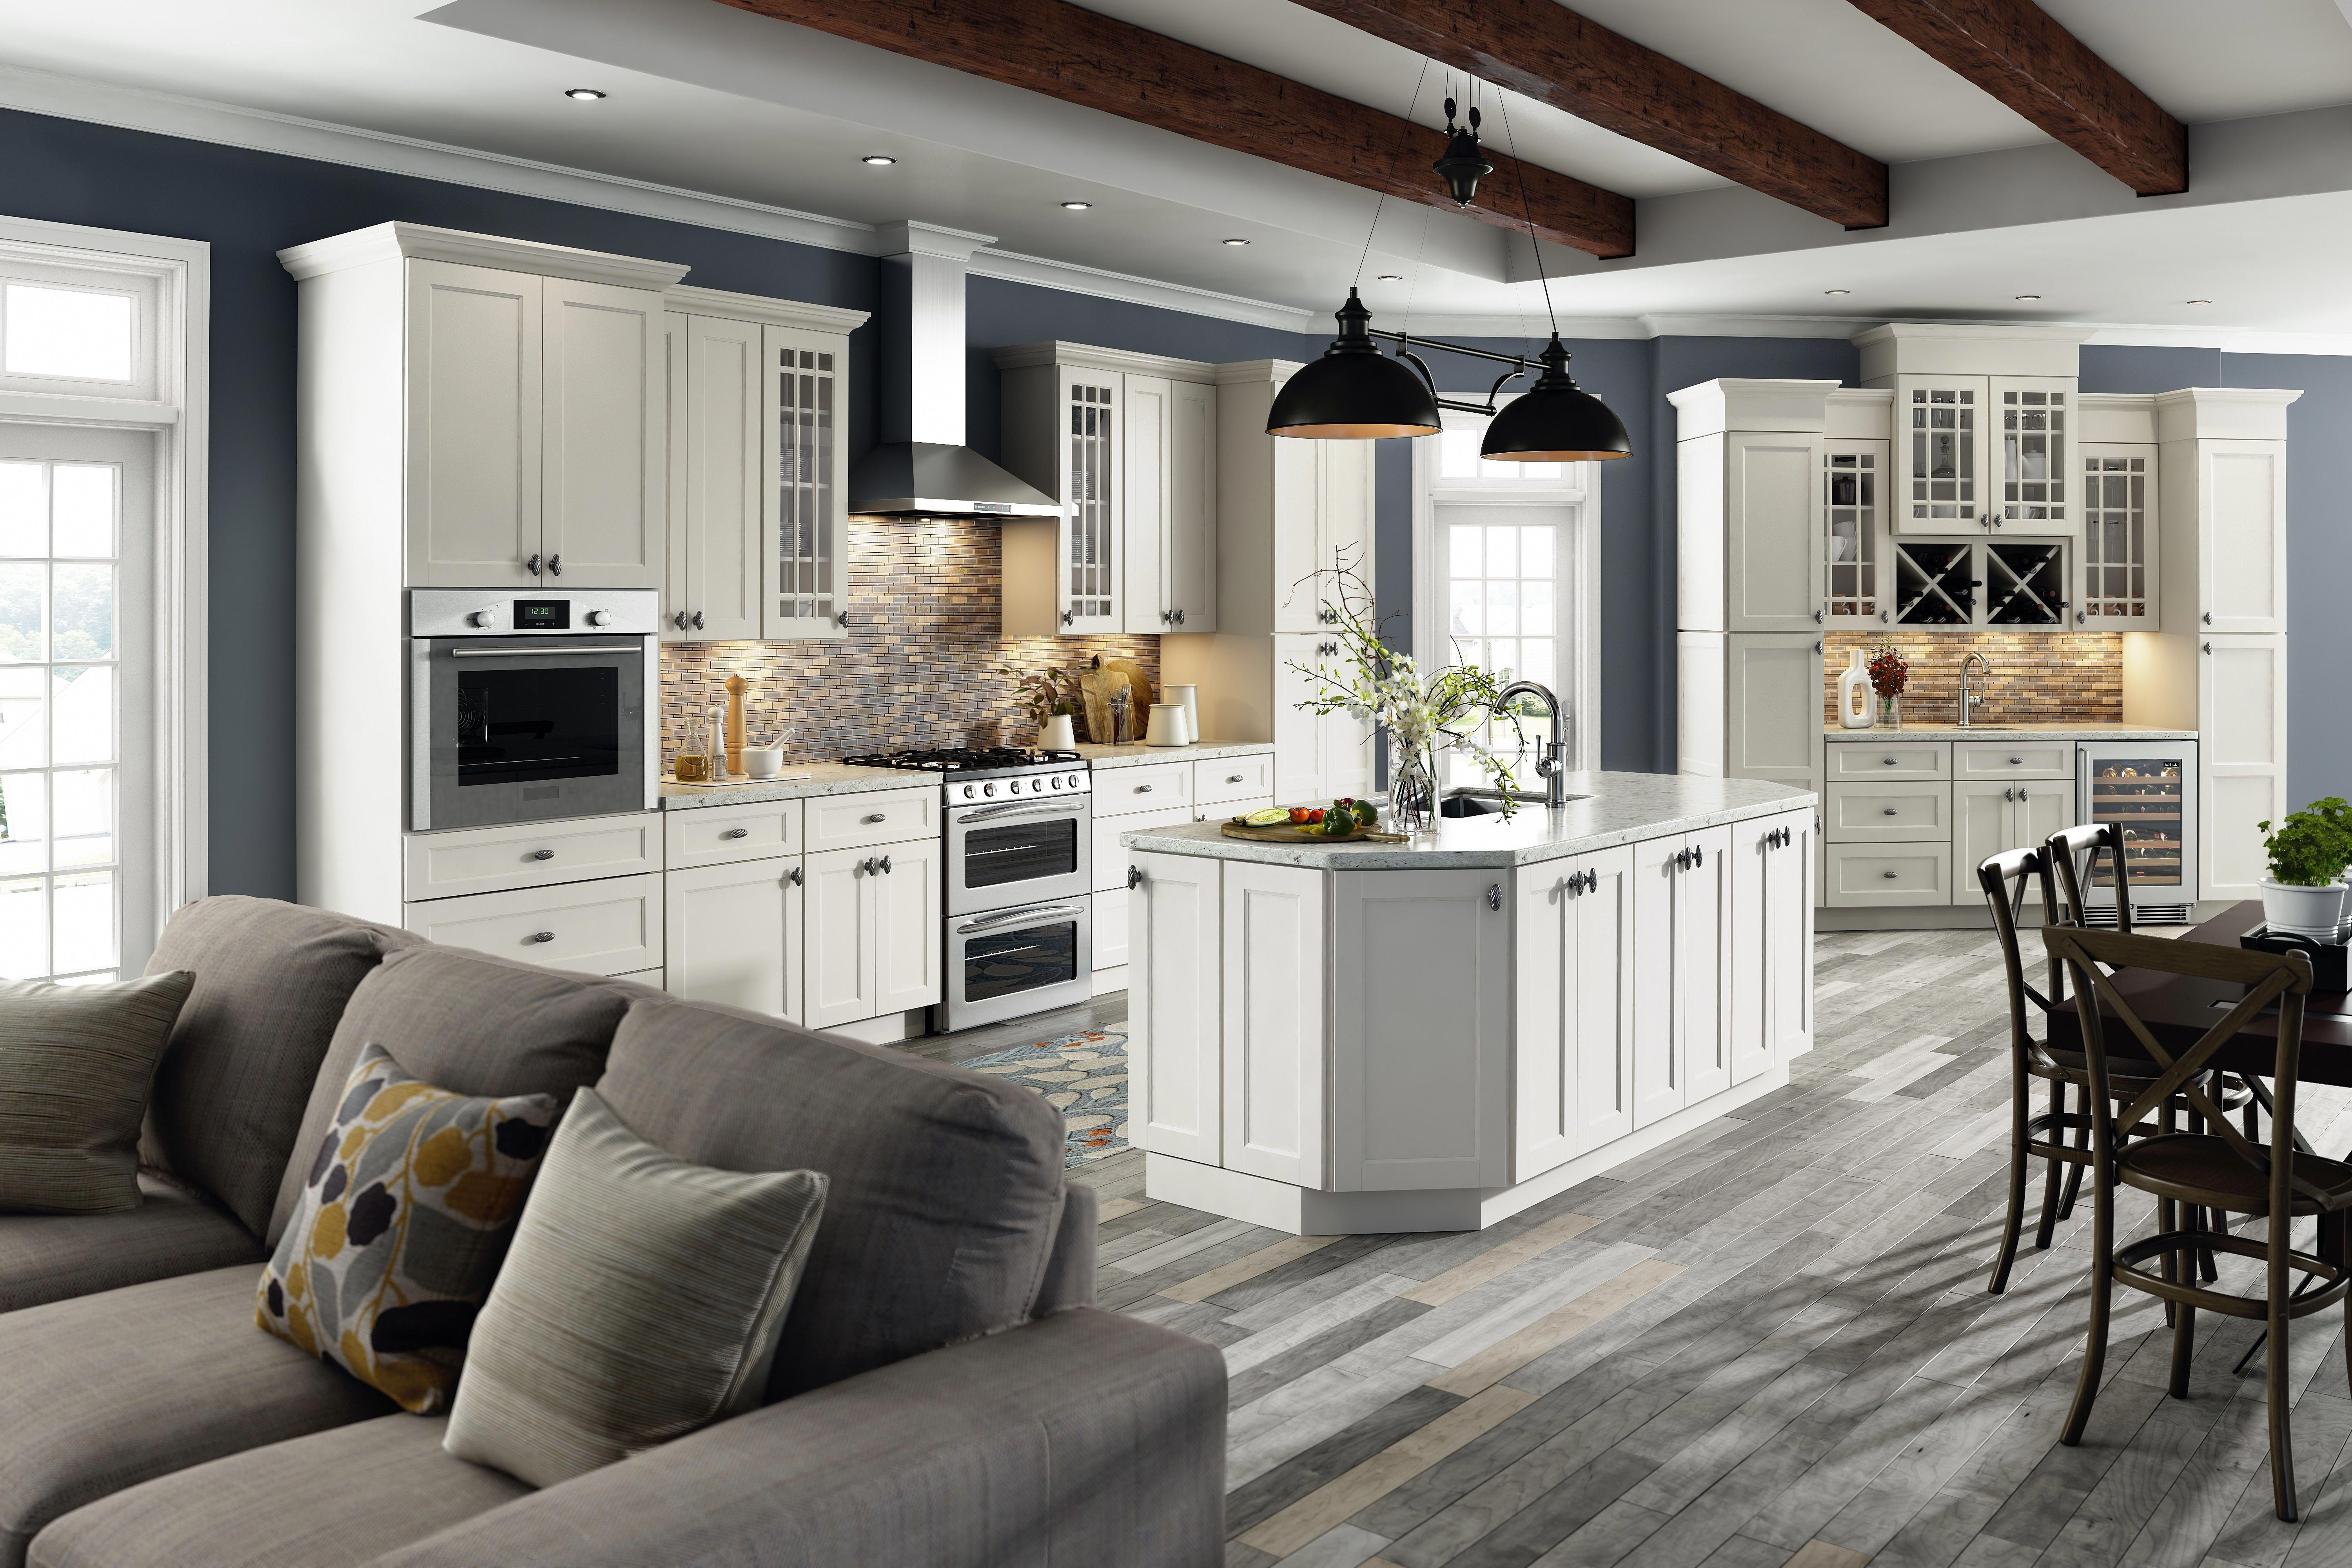 Pin on Kitchen Ideas Remodeling and Renovation